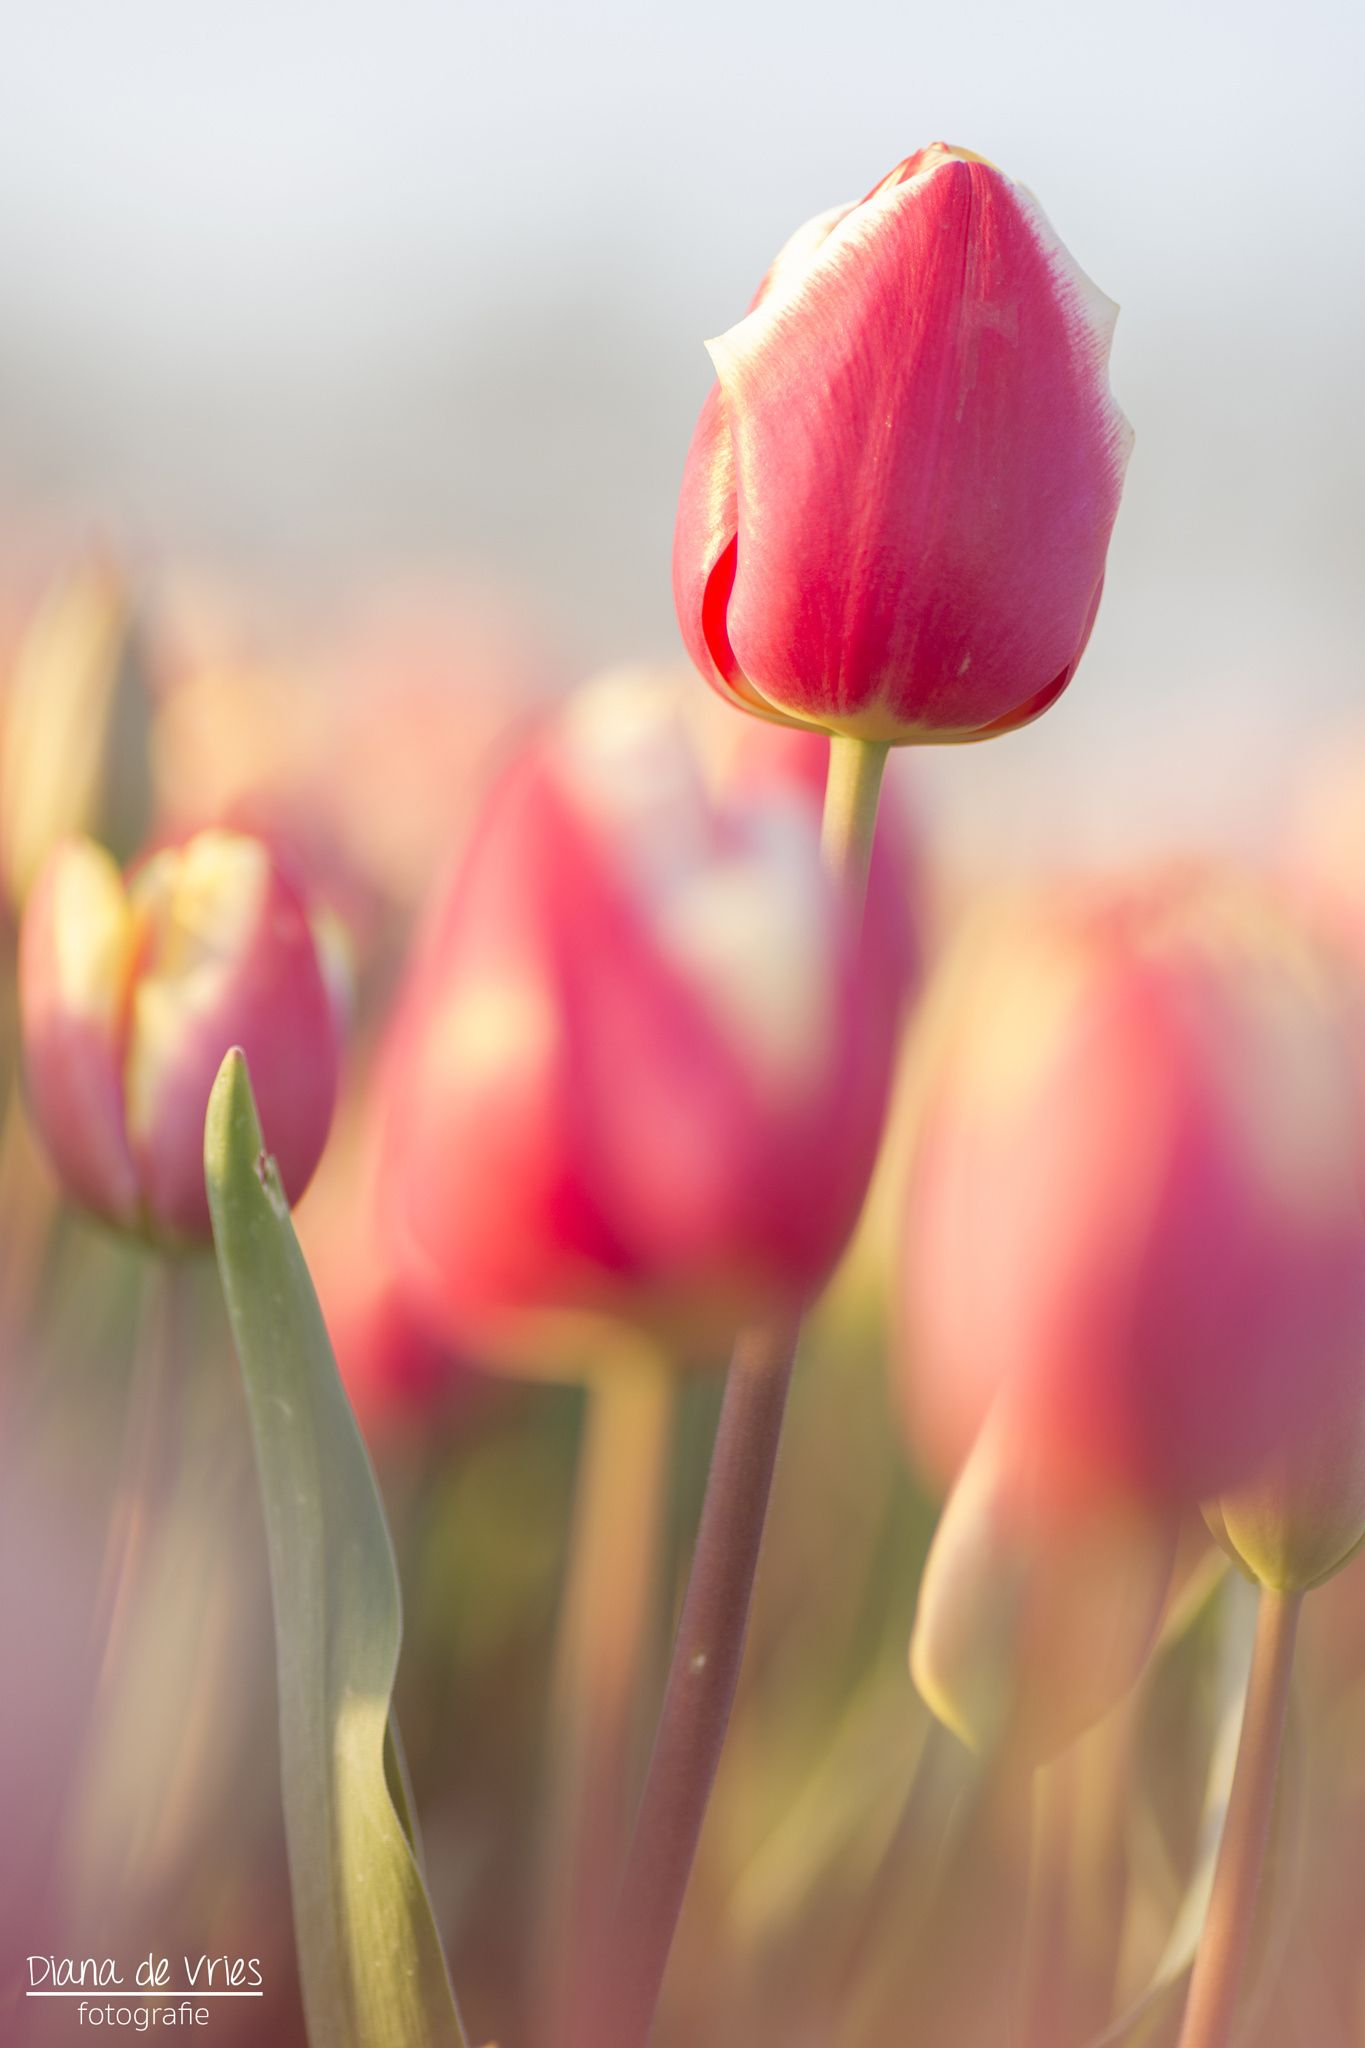 Pink tulip by Diana de Vries on 500px